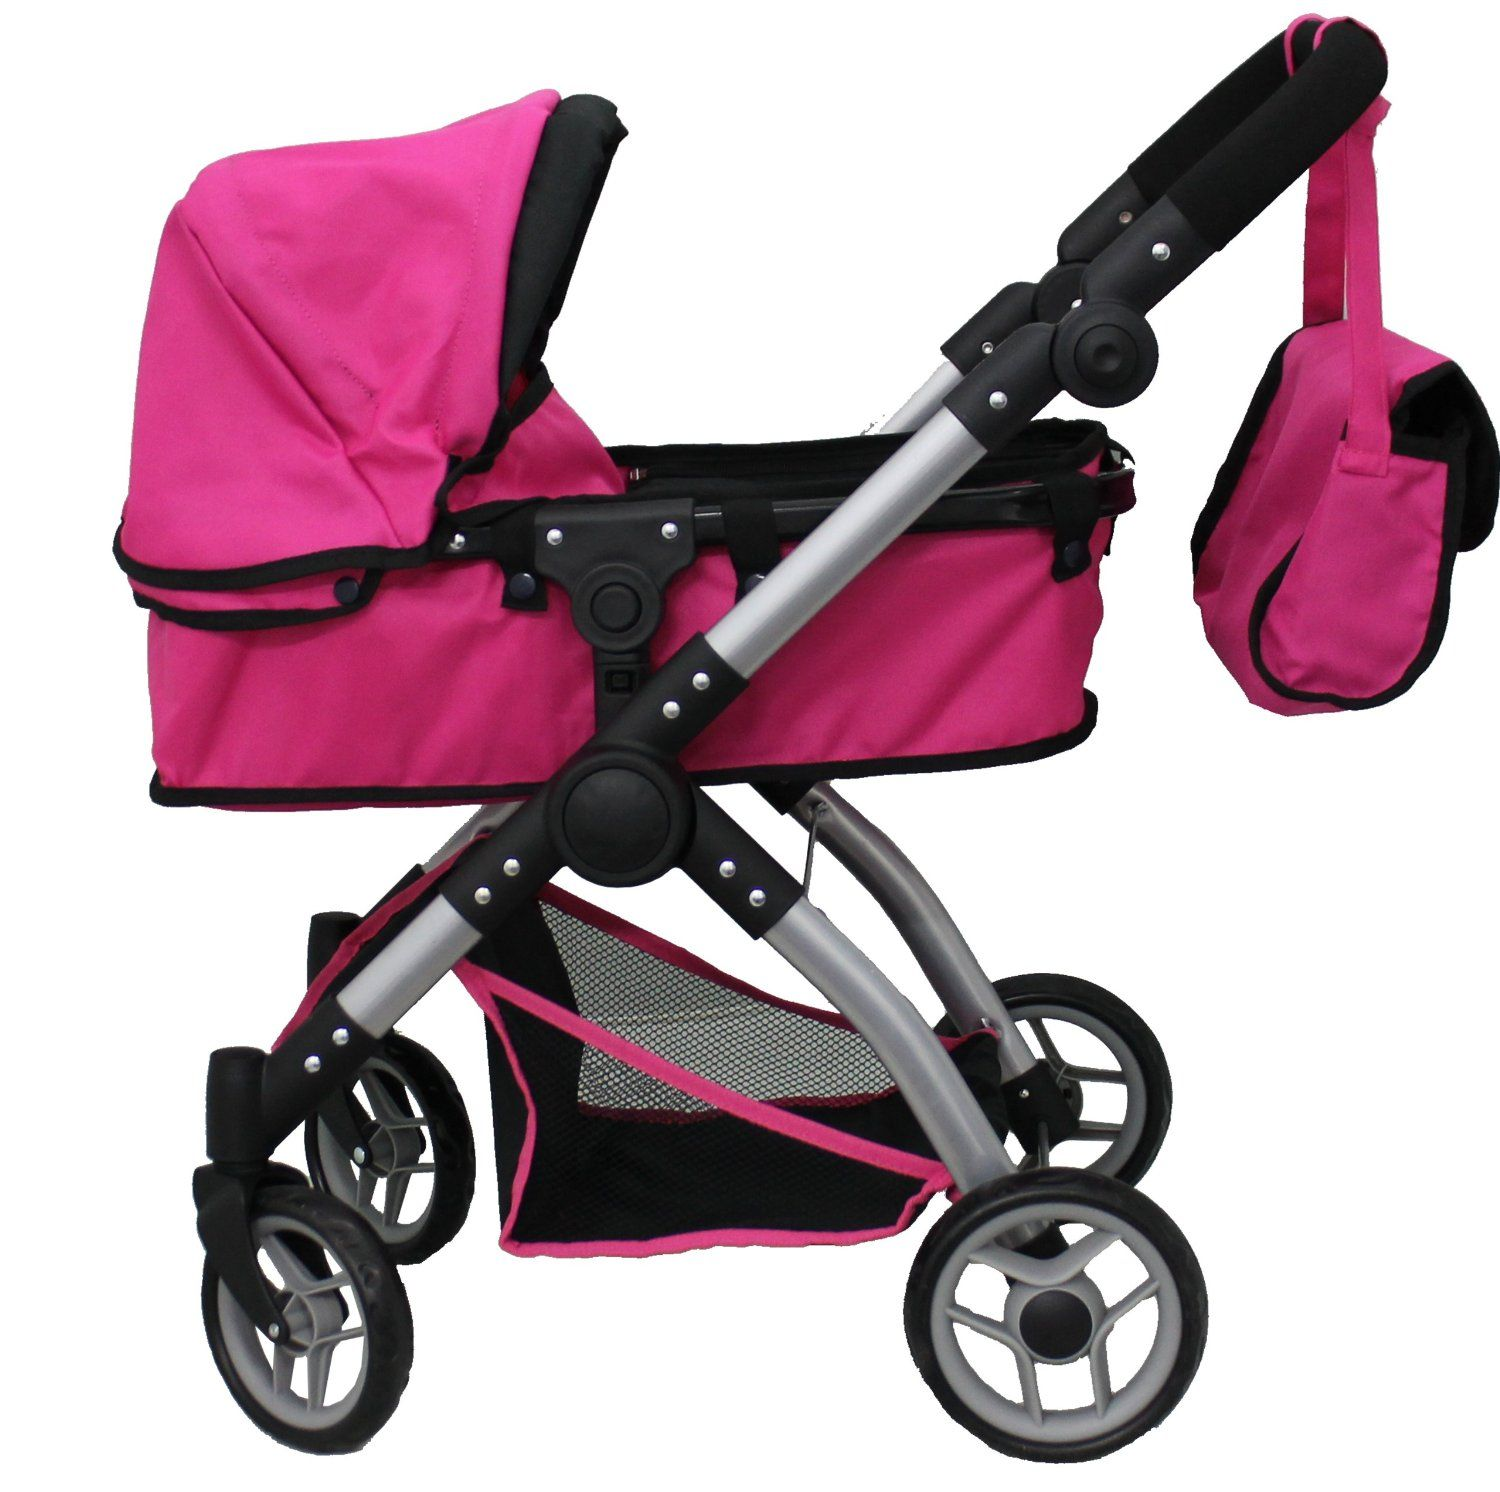 Double Dolls Pram Amazon Amazon Mommy Me 2 In 1 Deluxe Doll Stroller View All